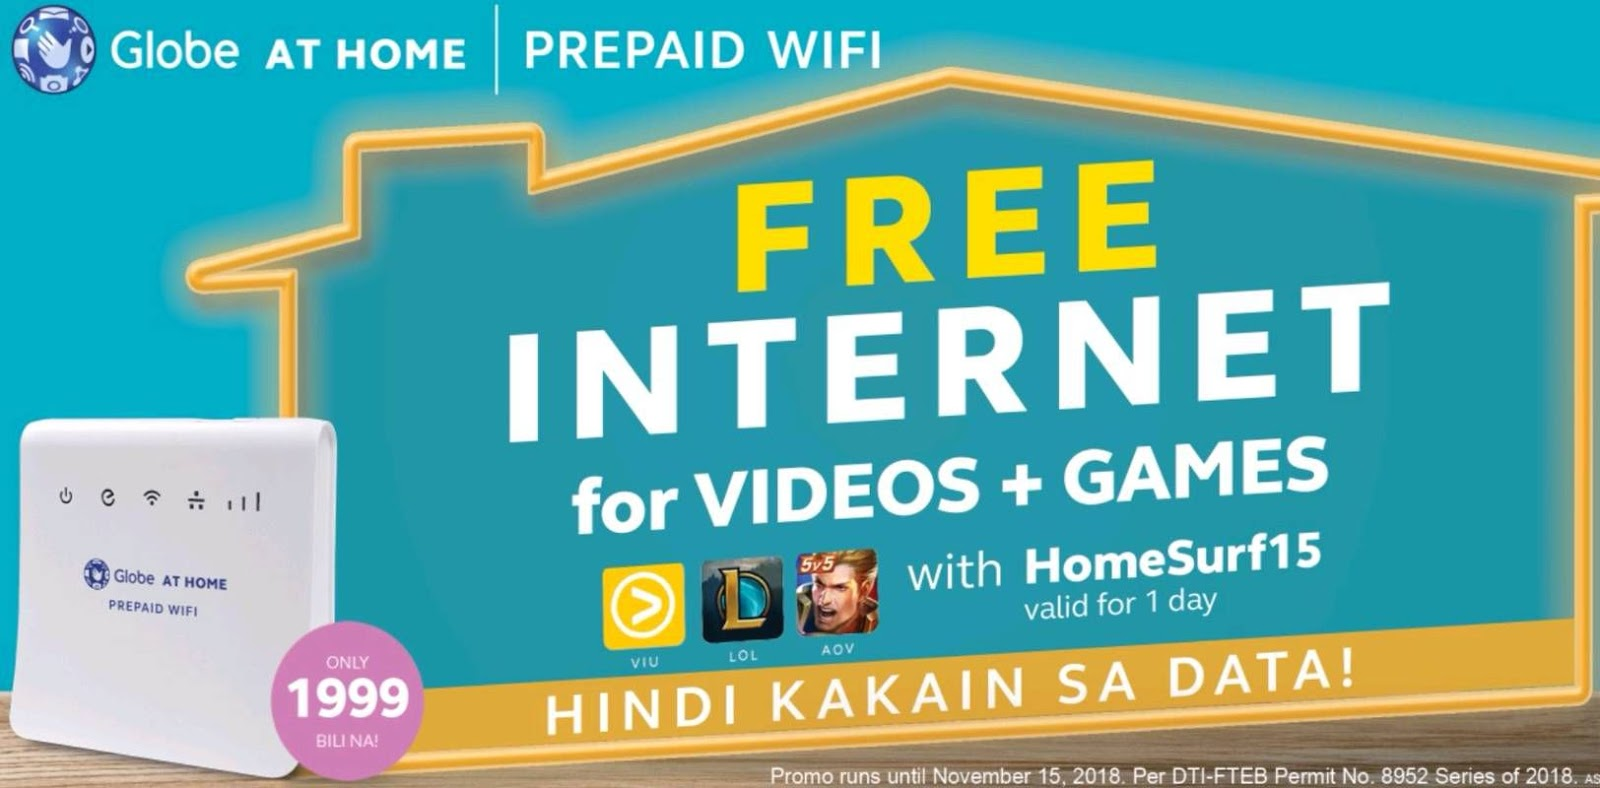 Globe At Home Prepaid Home WiFi Now With Free Access to AOV